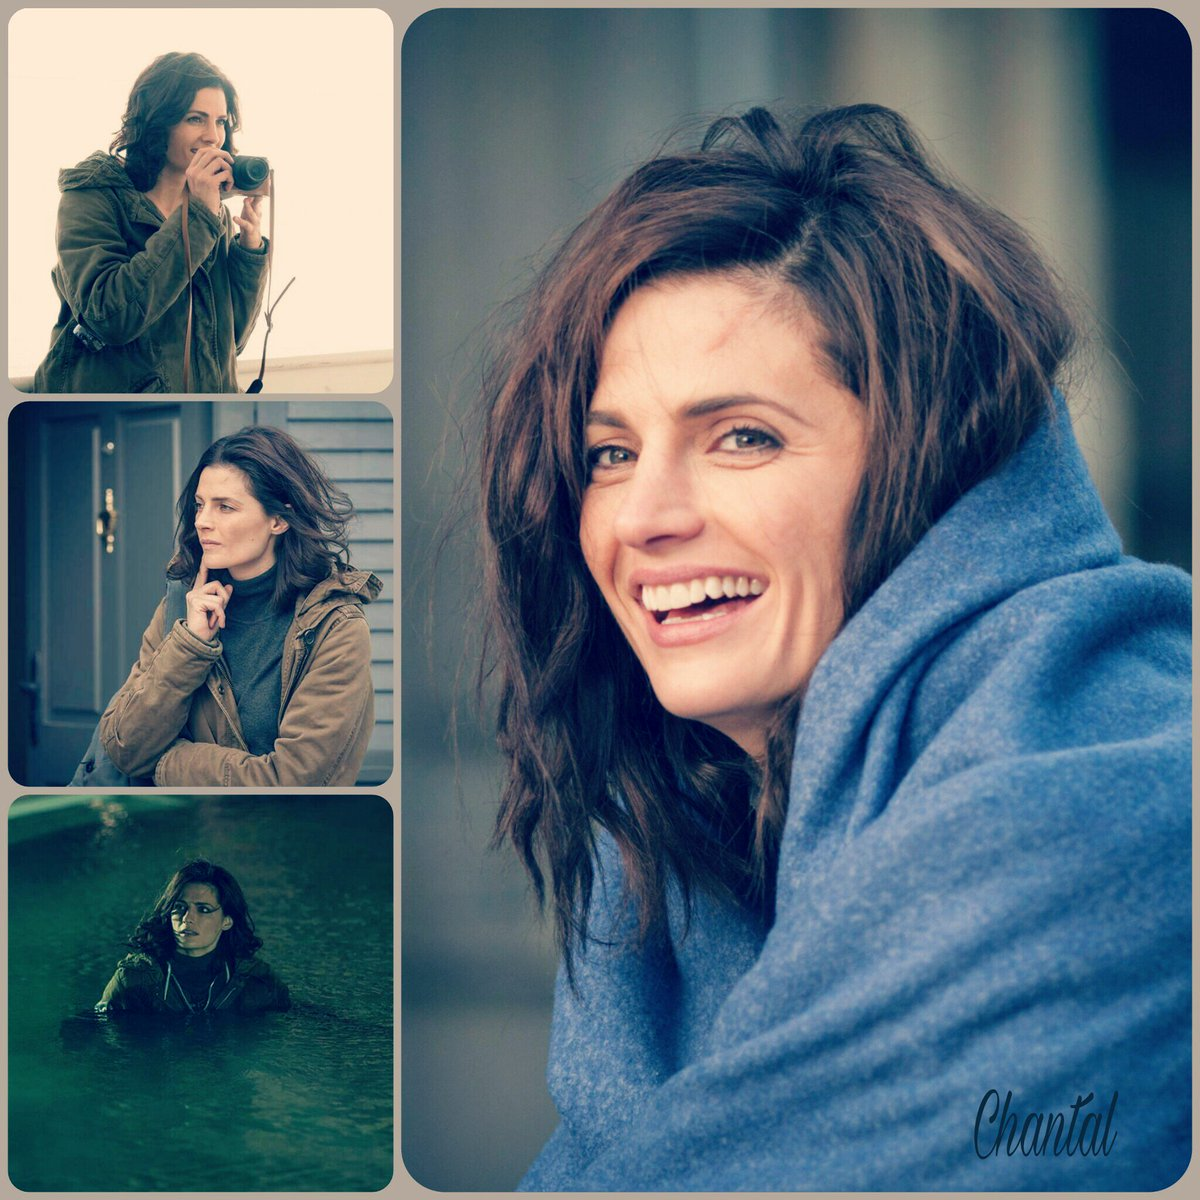 #StanaKatic #Absentia Have a great weekend<br>http://pic.twitter.com/zk52GUXB2r